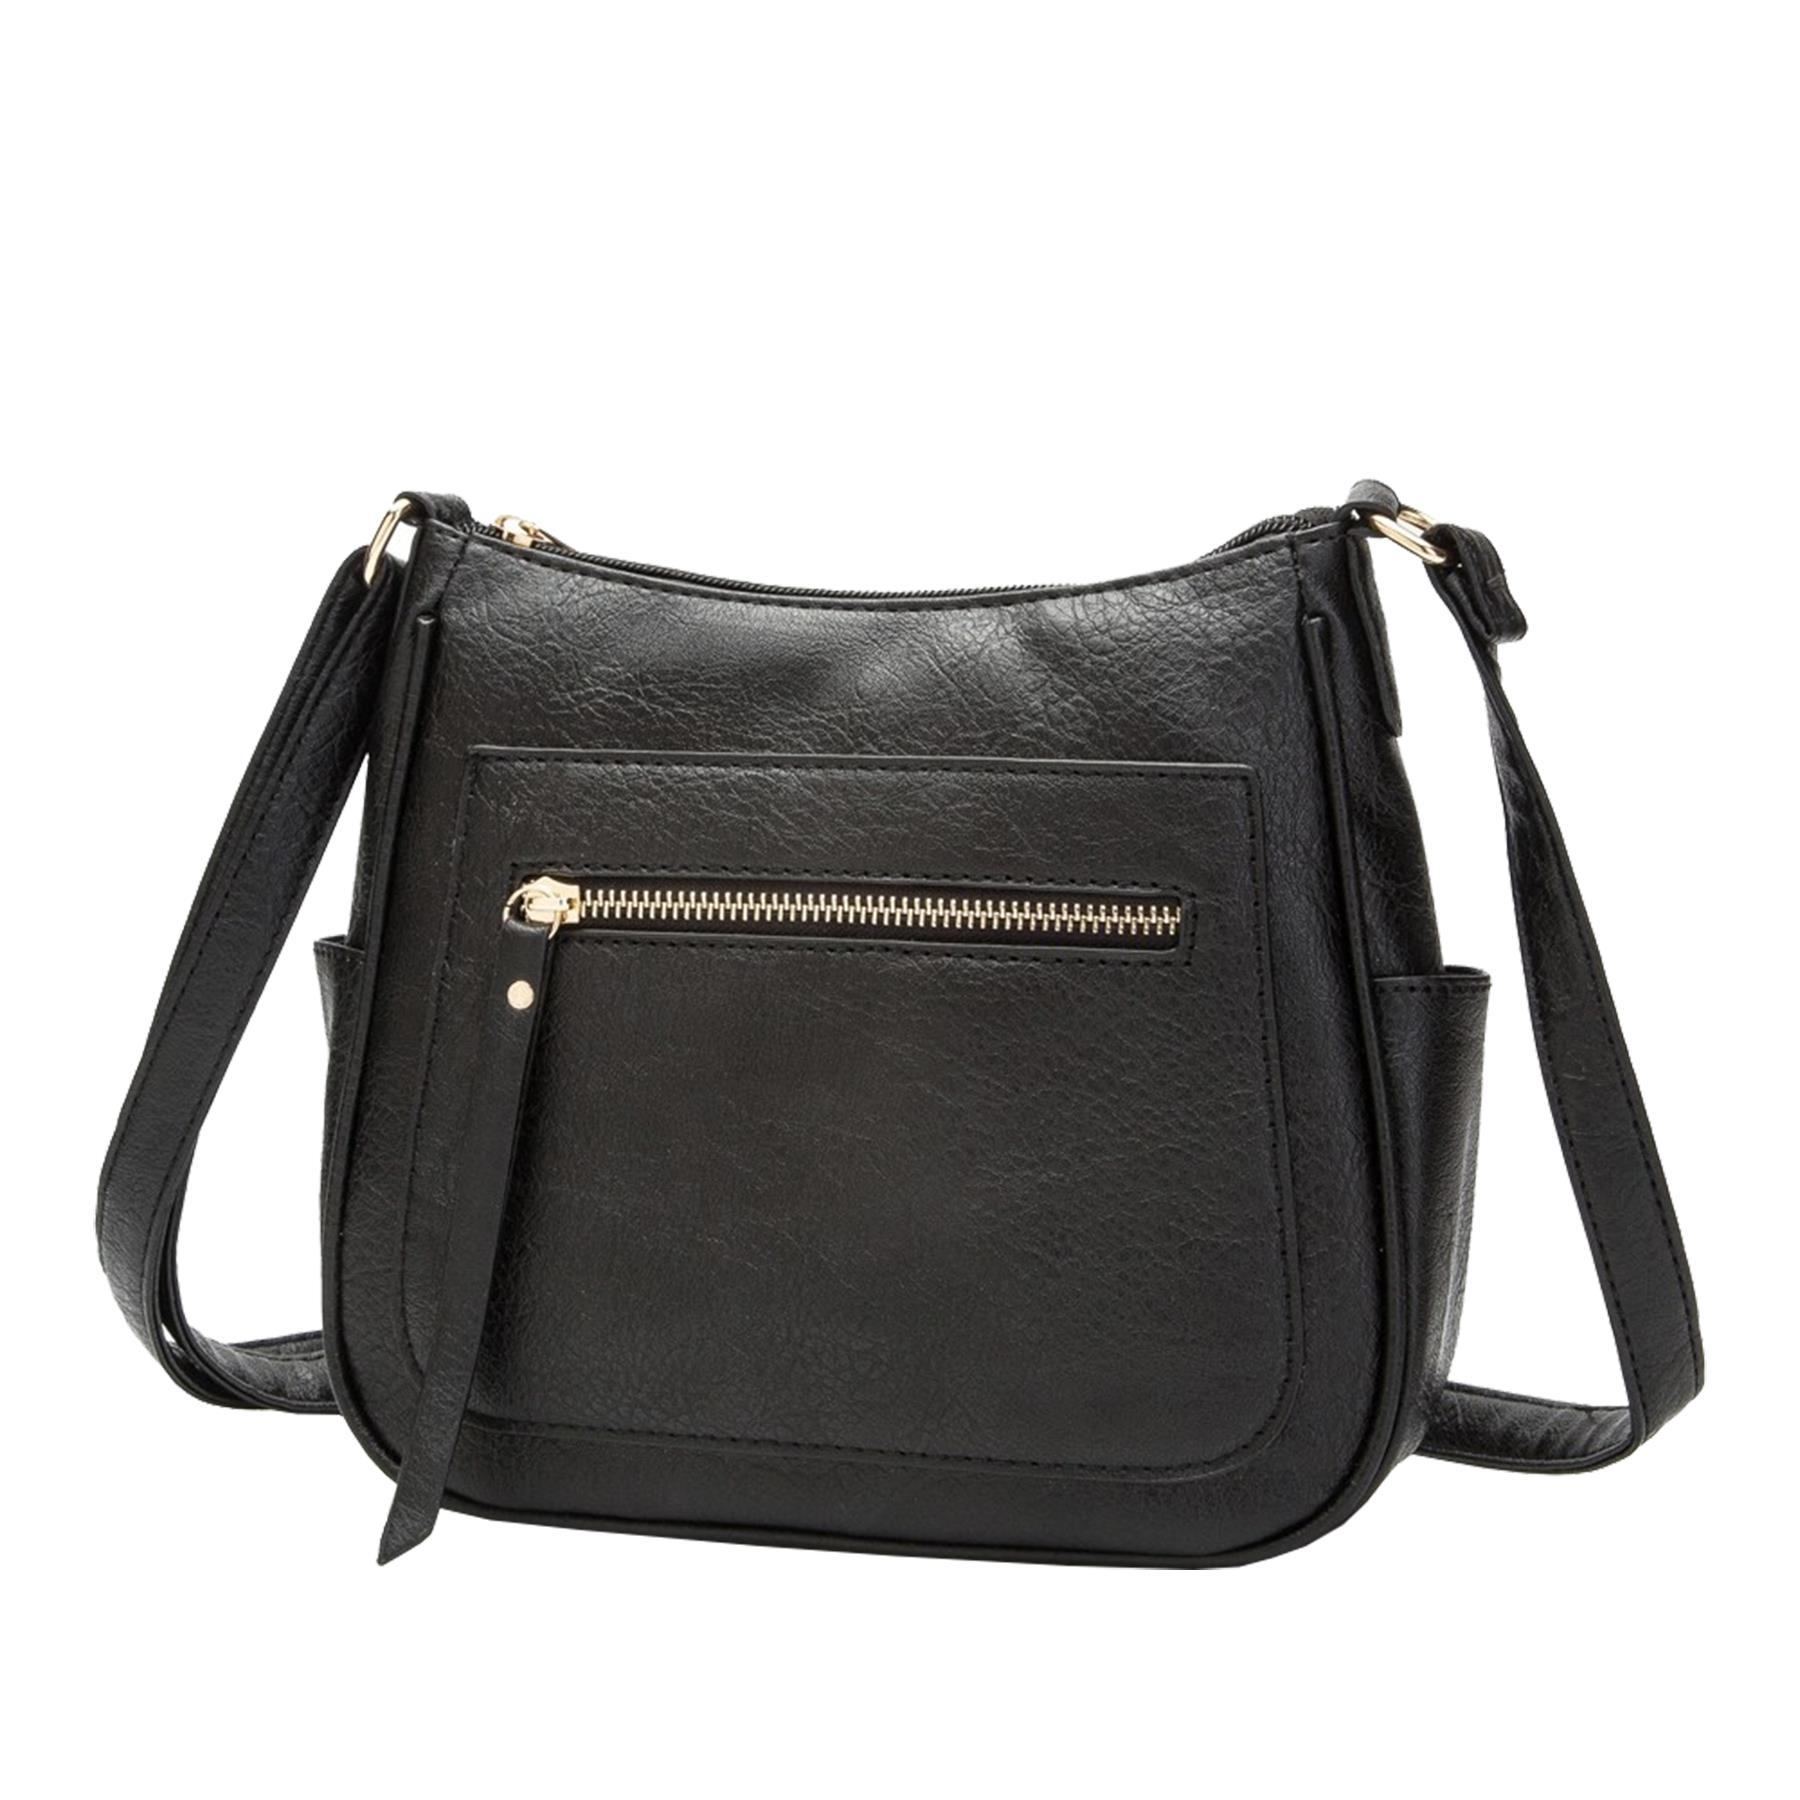 New-Women-s-Front-Zip-Faux-Leather-Basic-Small-Crossbody-Messenger-Bag thumbnail 3